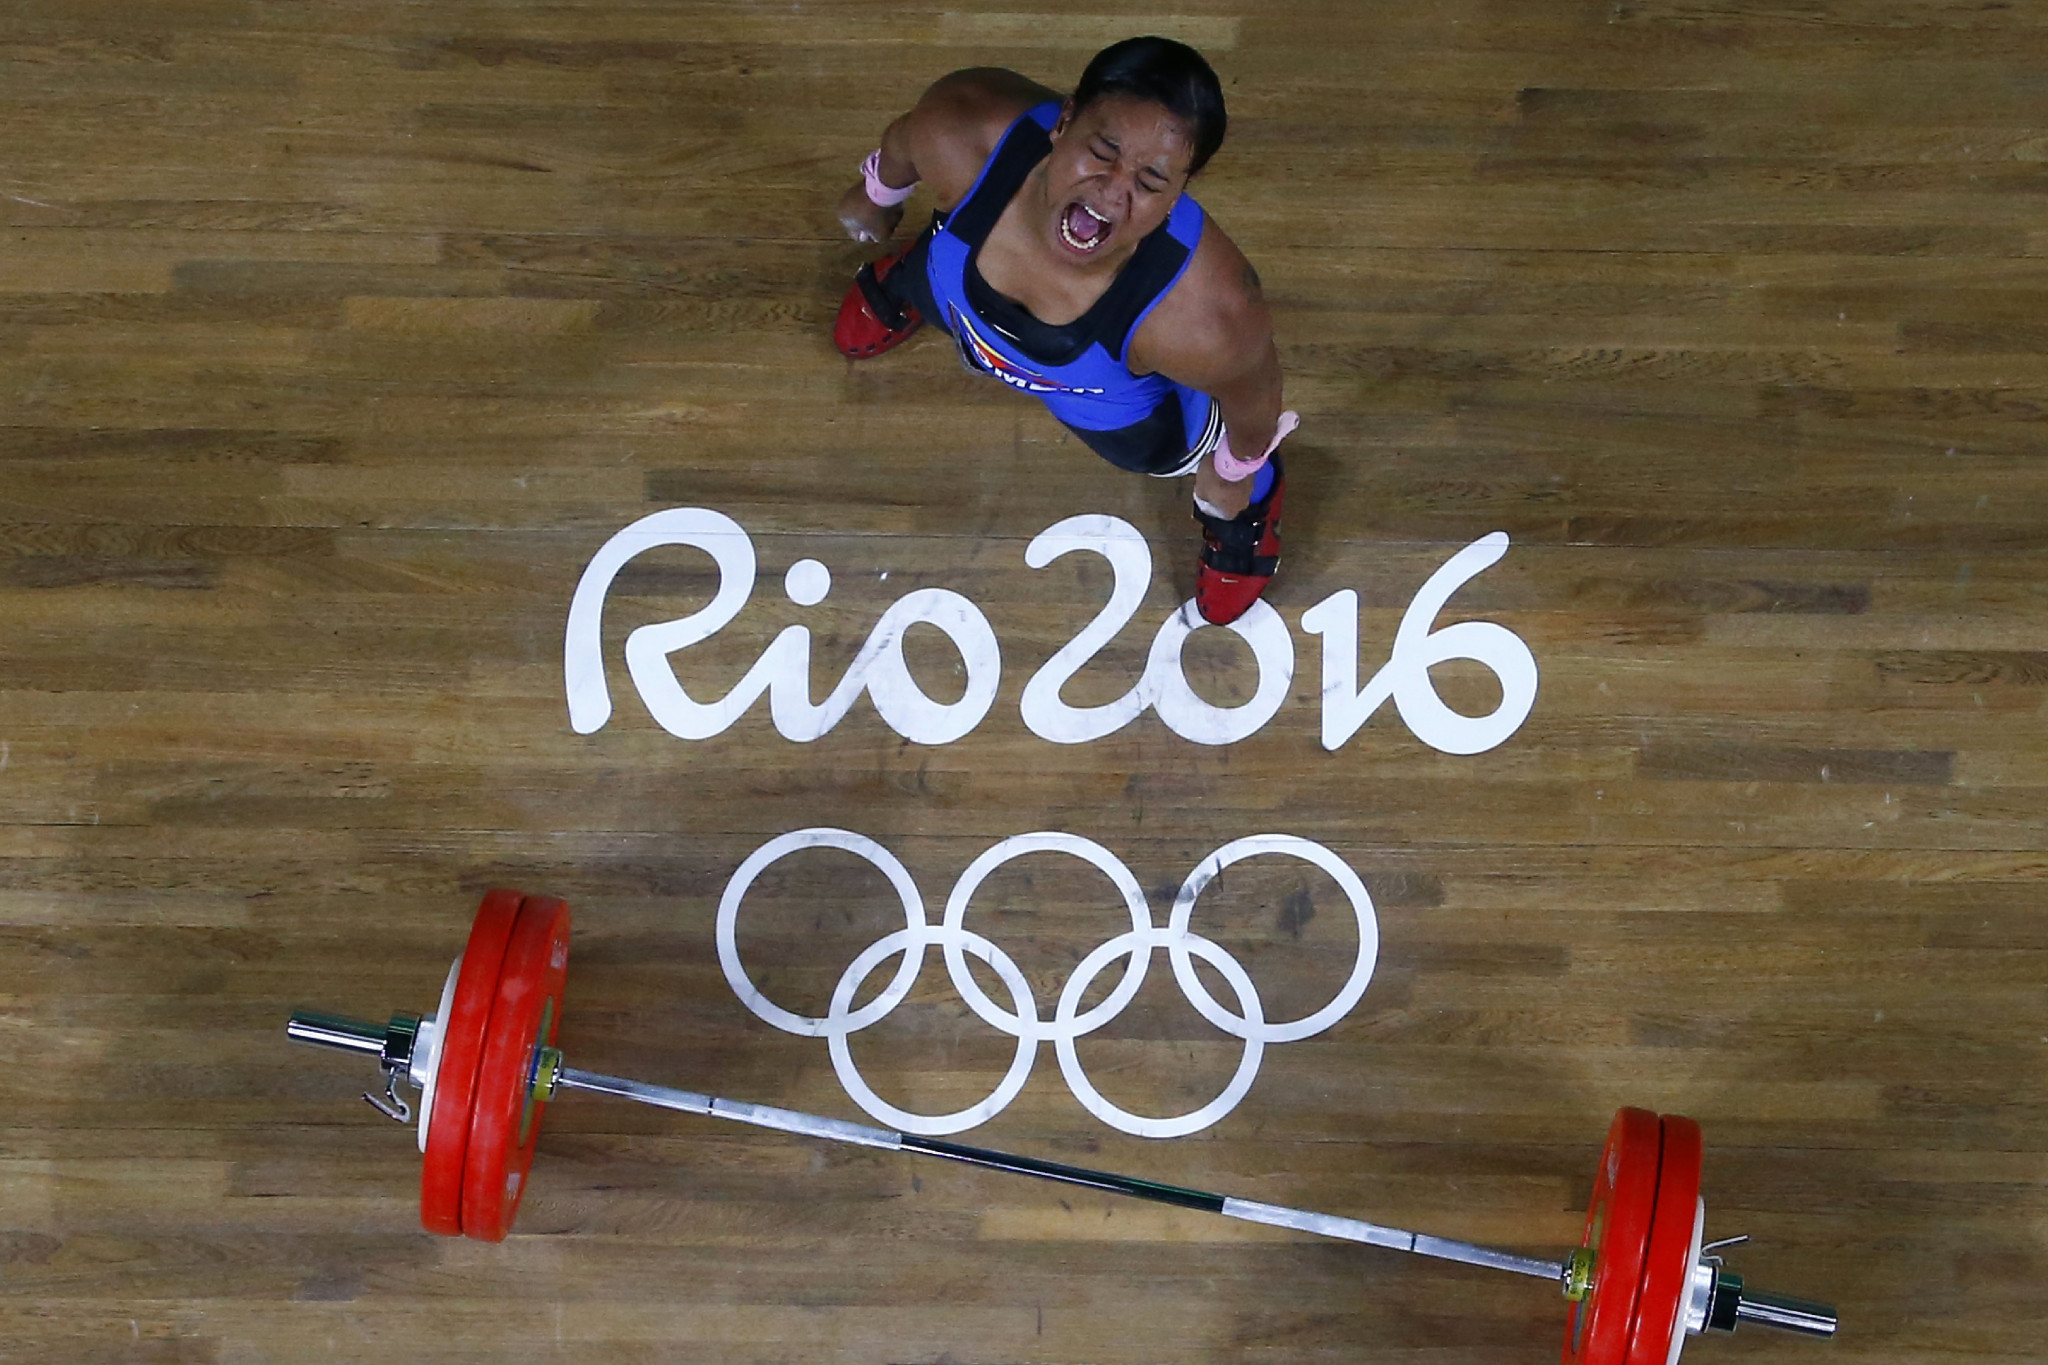 Weightlifting's place on the Olympic programme is not guaranteed beyond Tokyo 2020 ©Getty Images